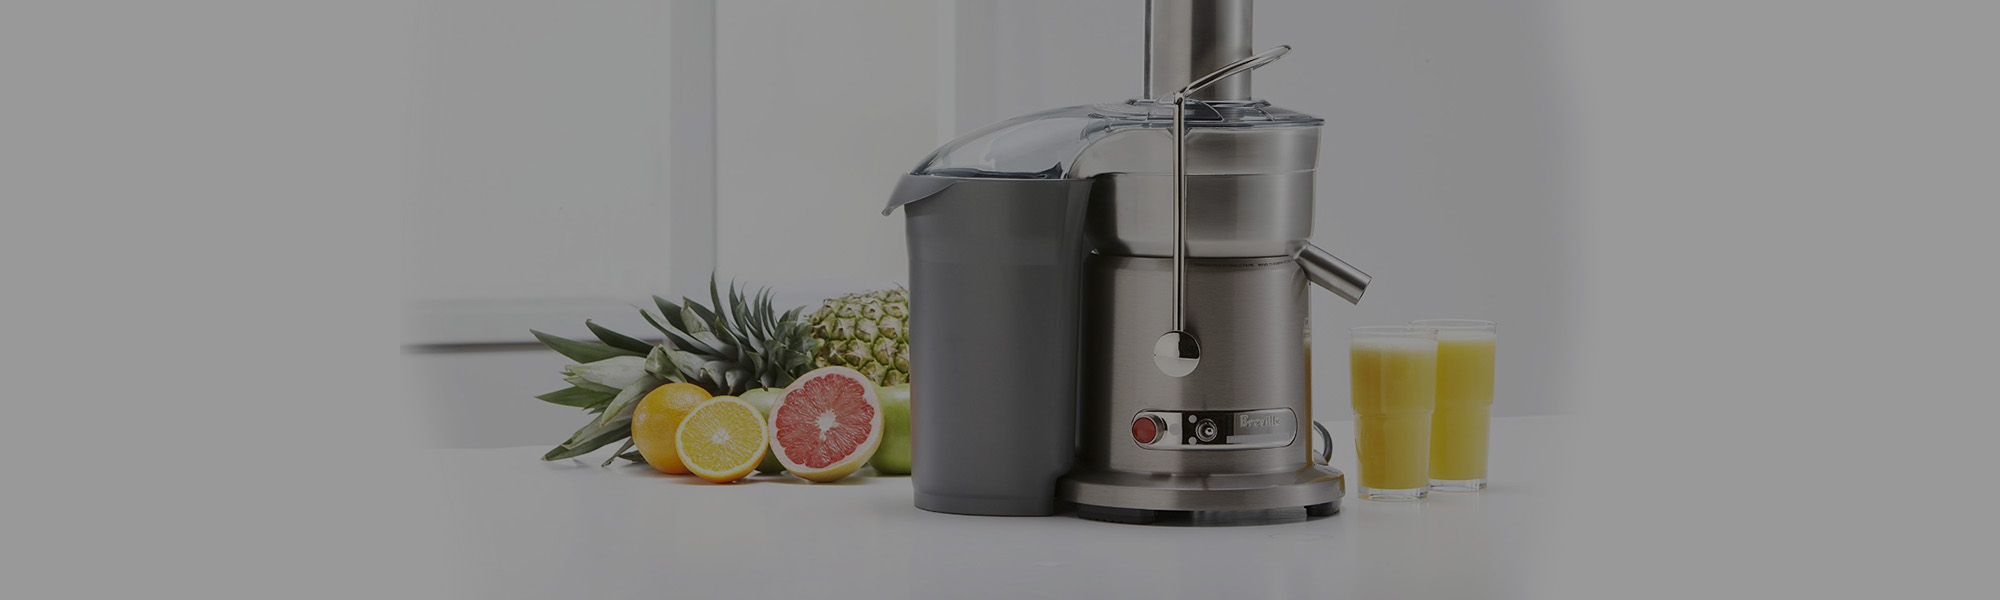 Breville BJE820XL Juice<br>Duo Disc Juicer